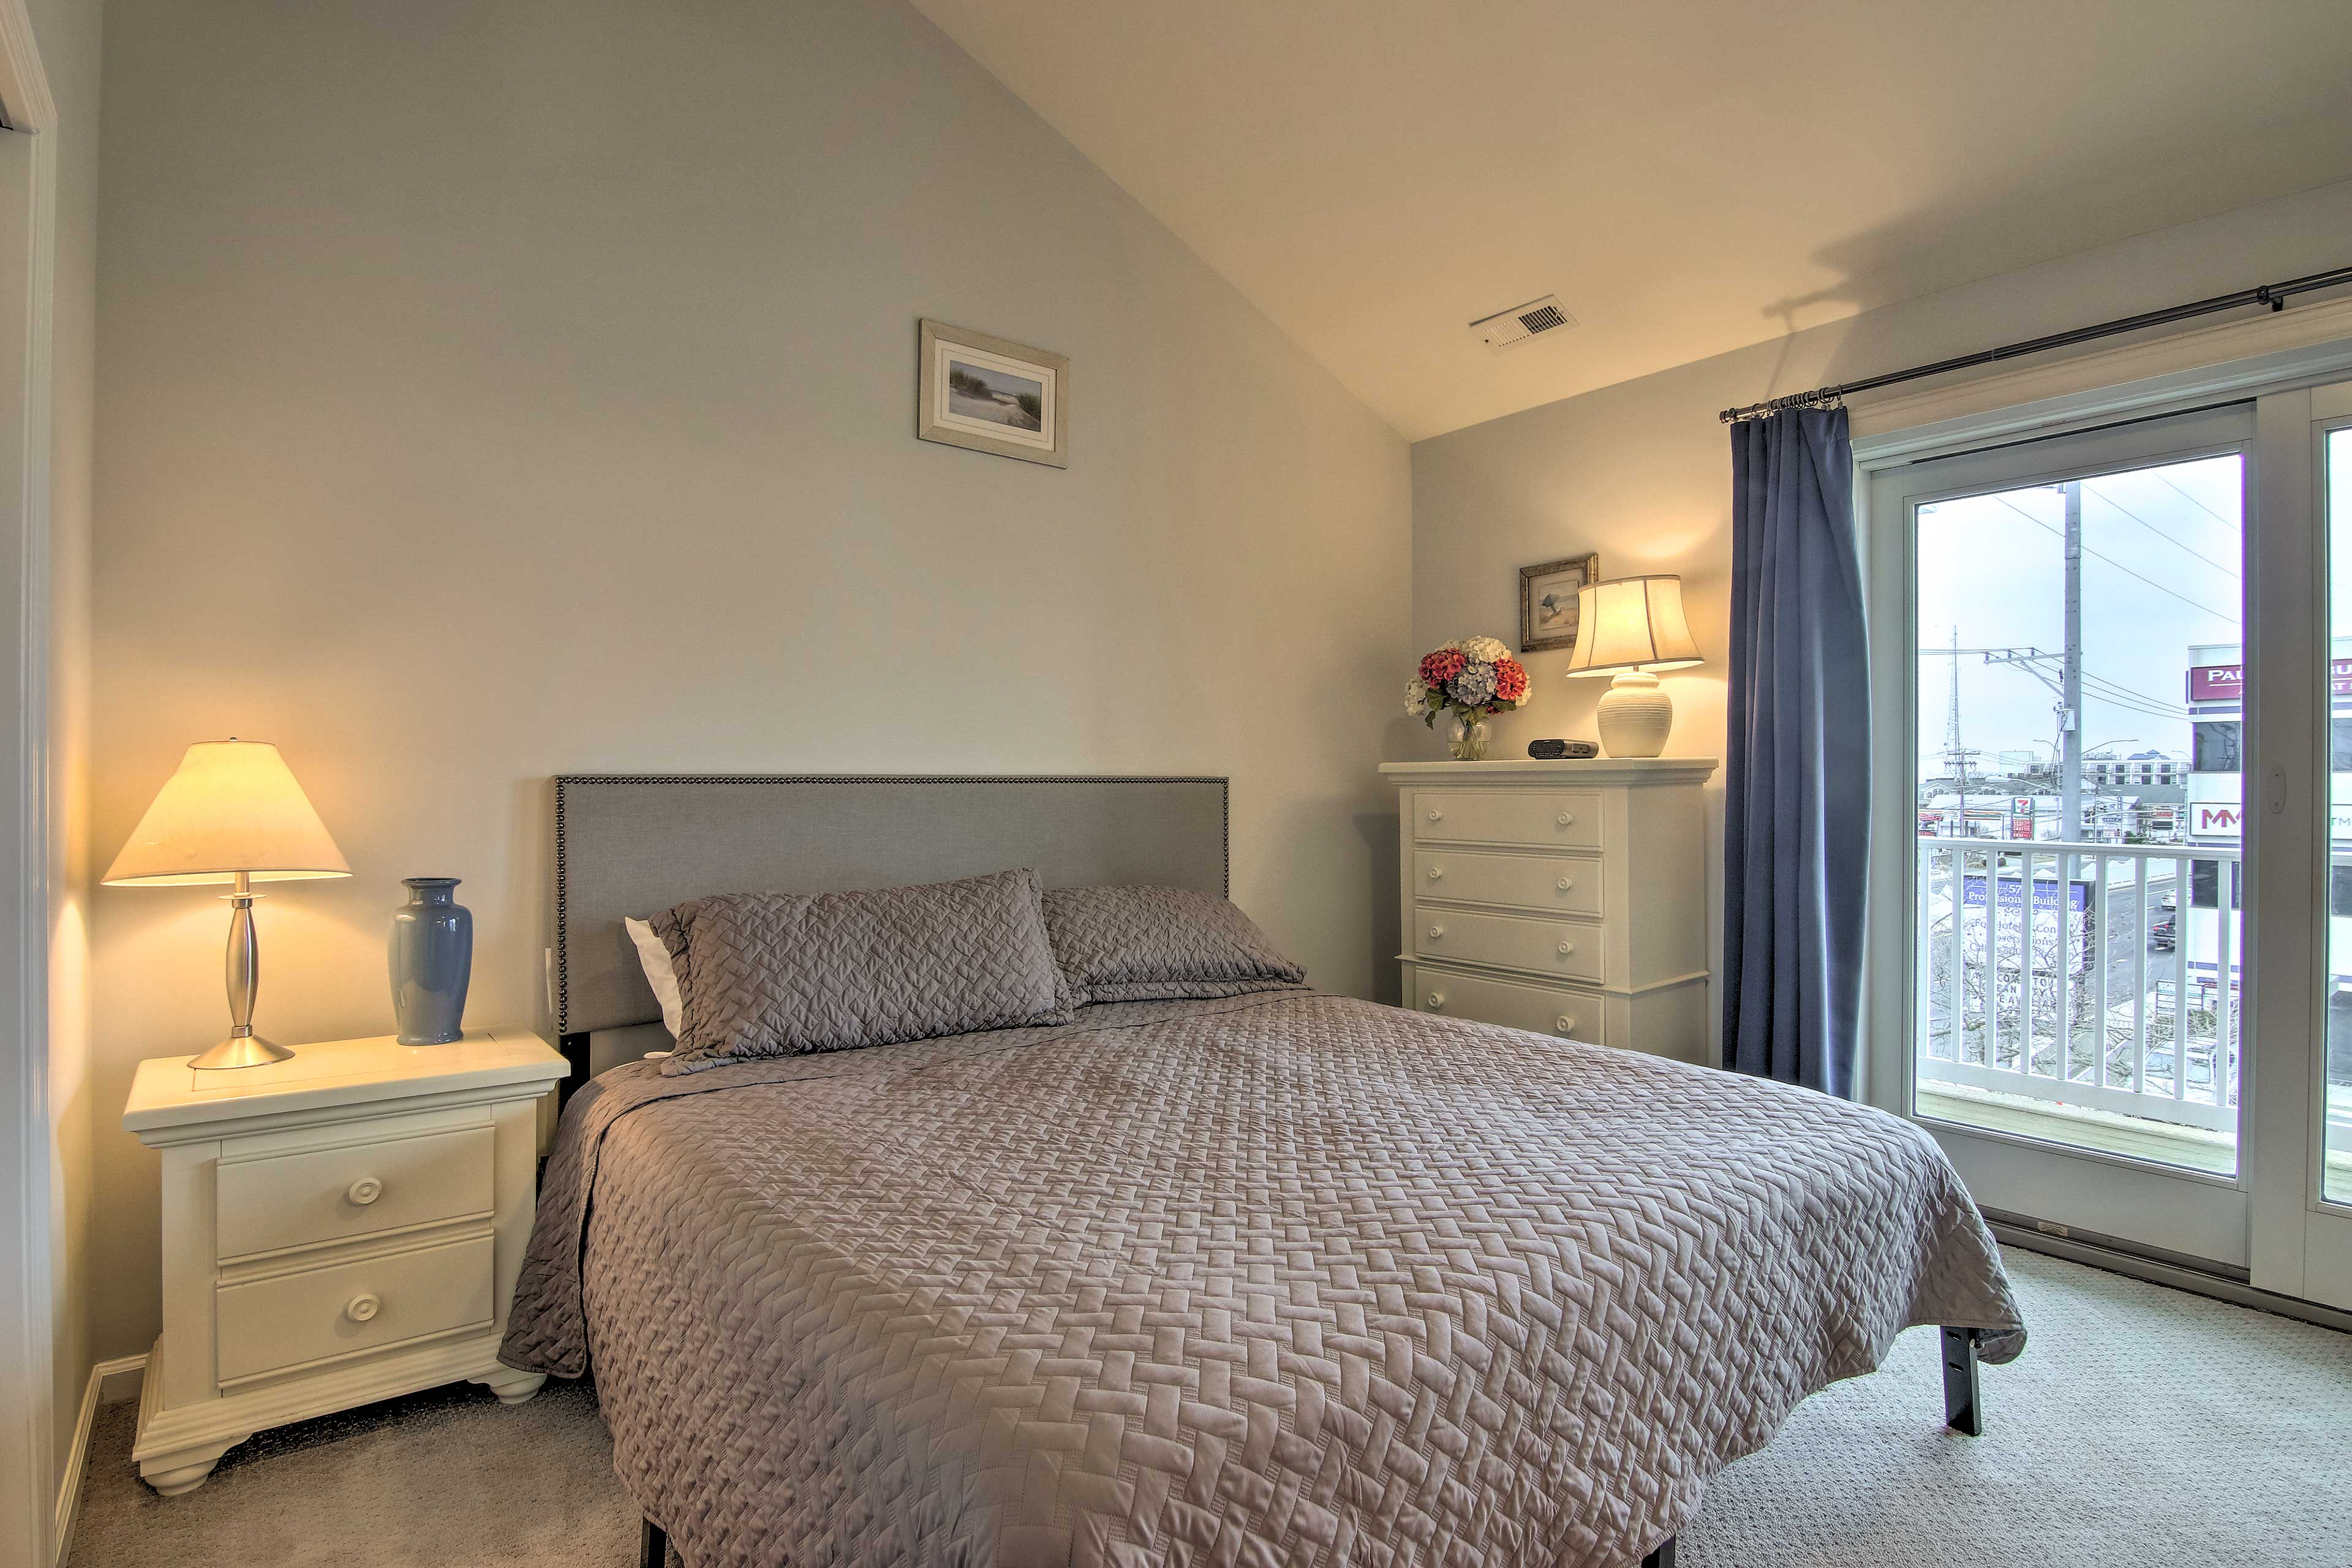 The first master bedroom offers a plush king bed.